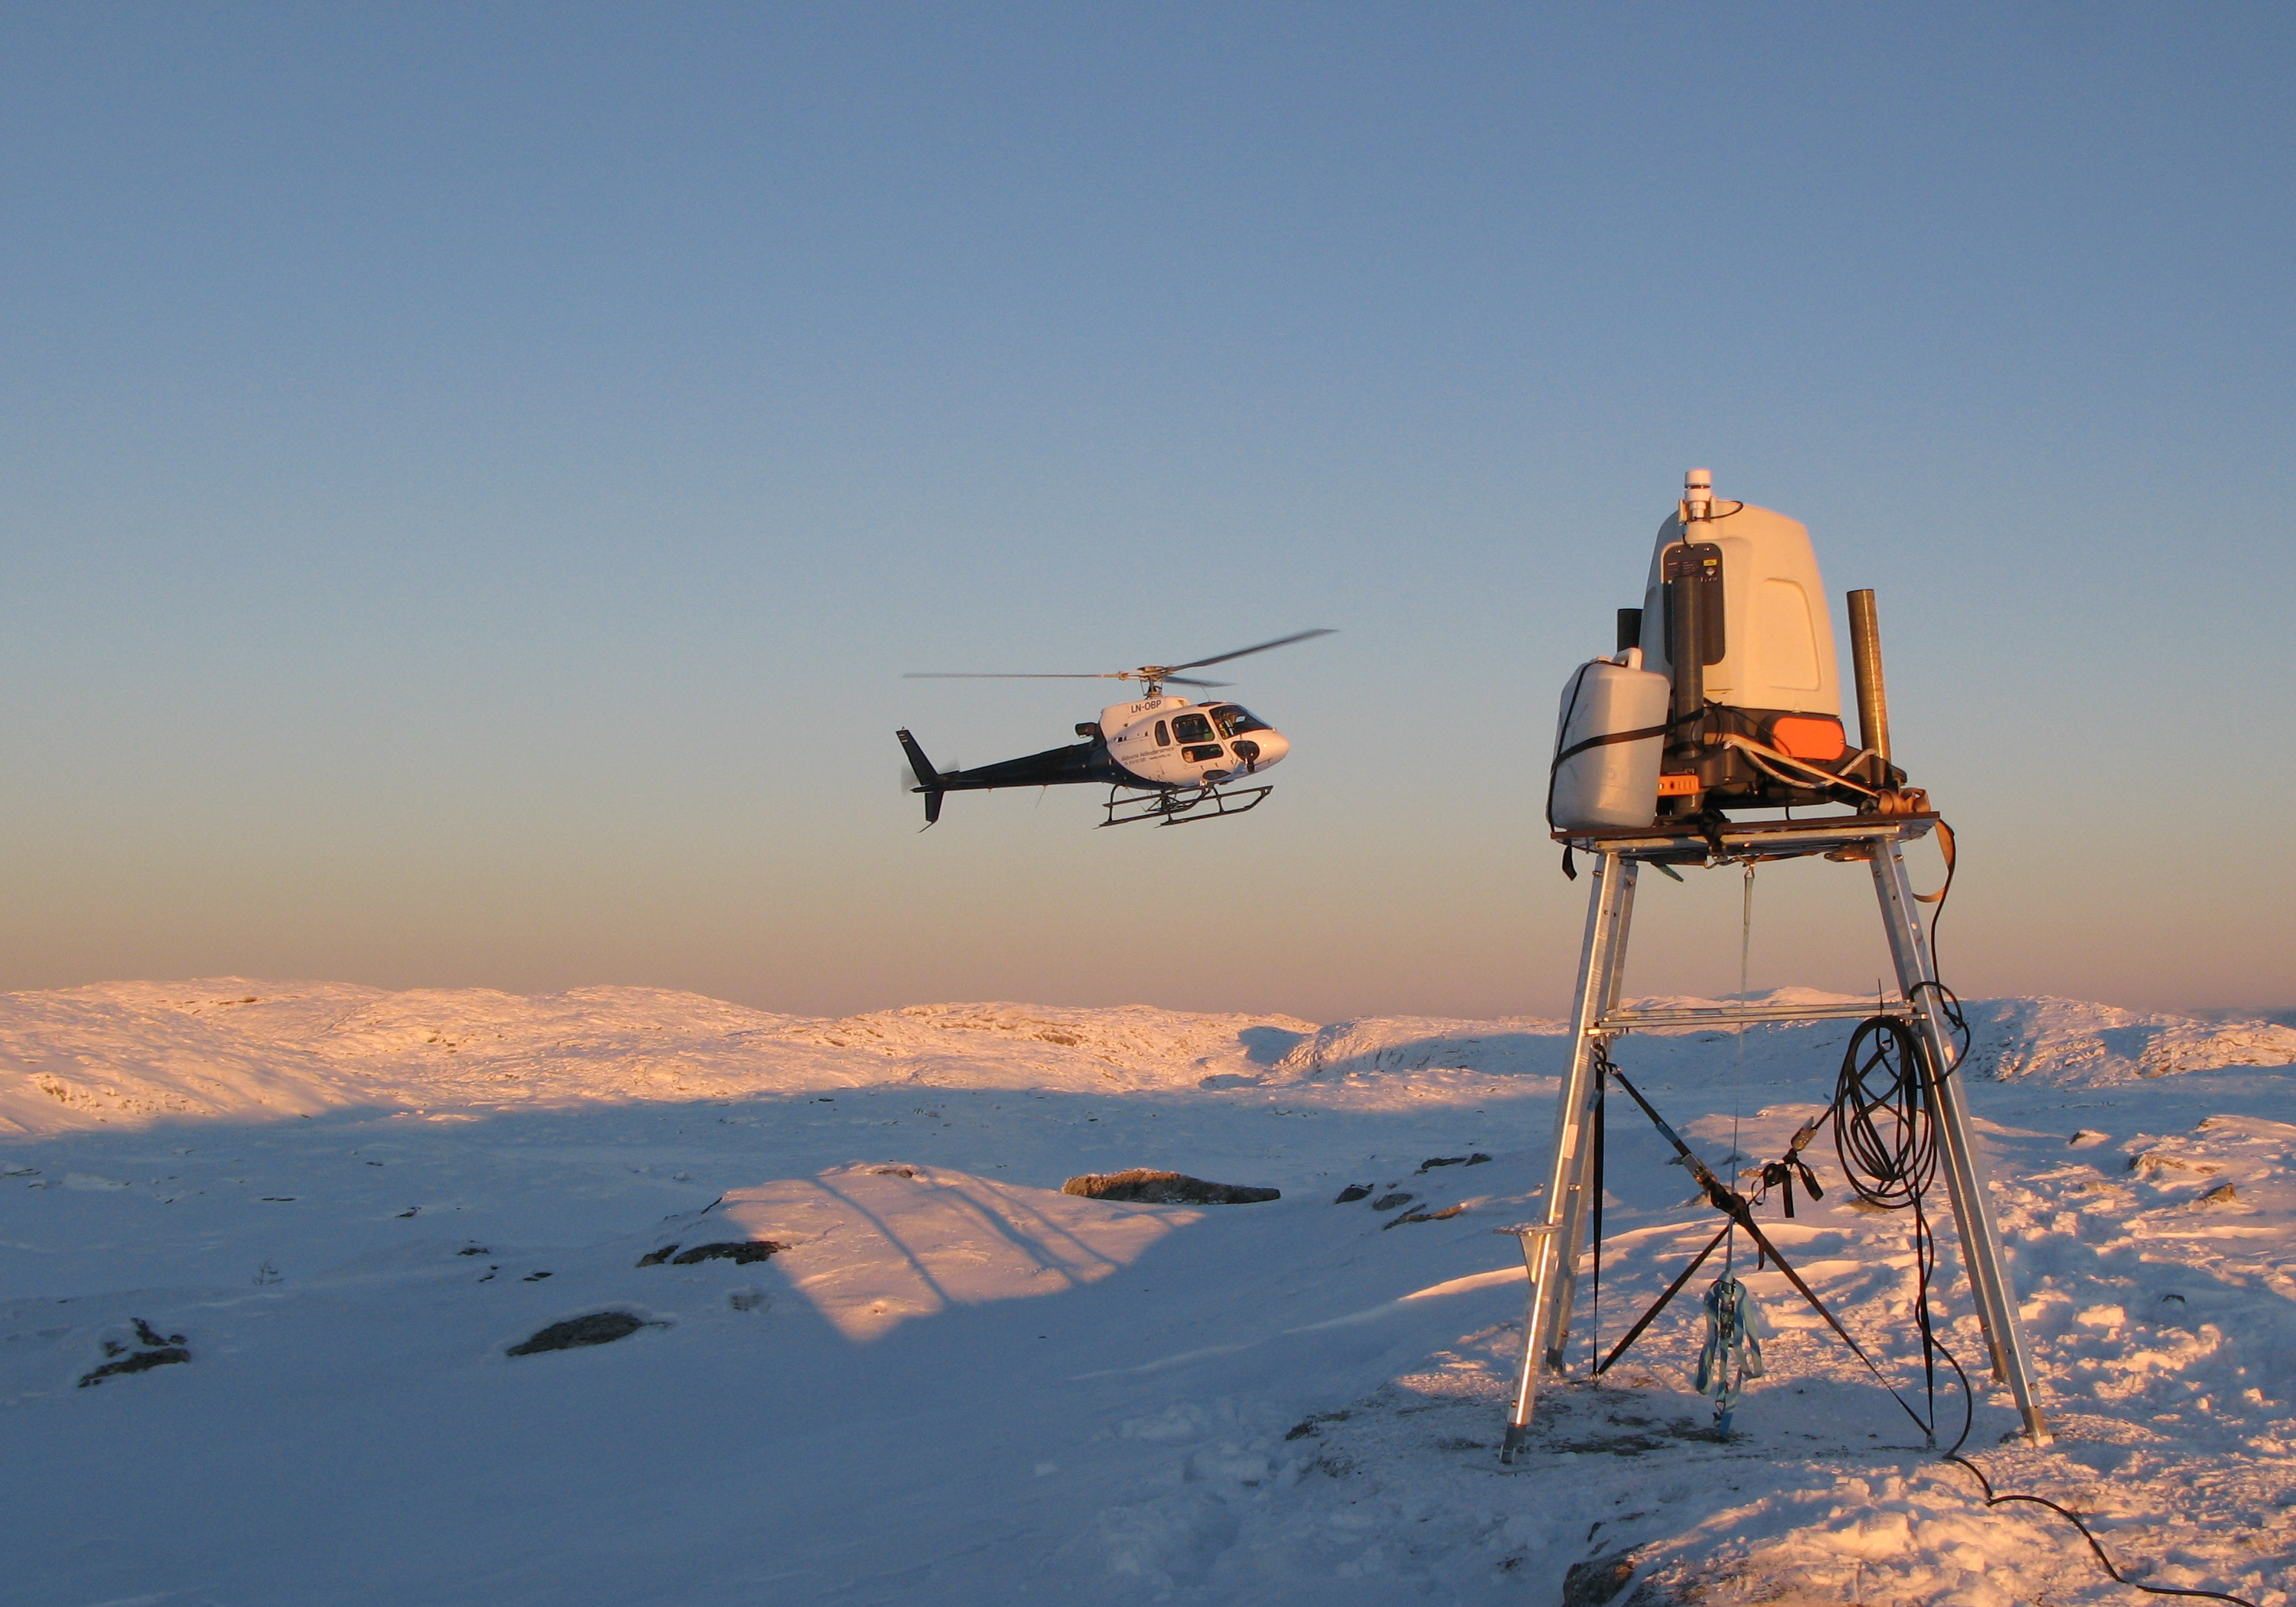 Meventus Lidar and Helicopter